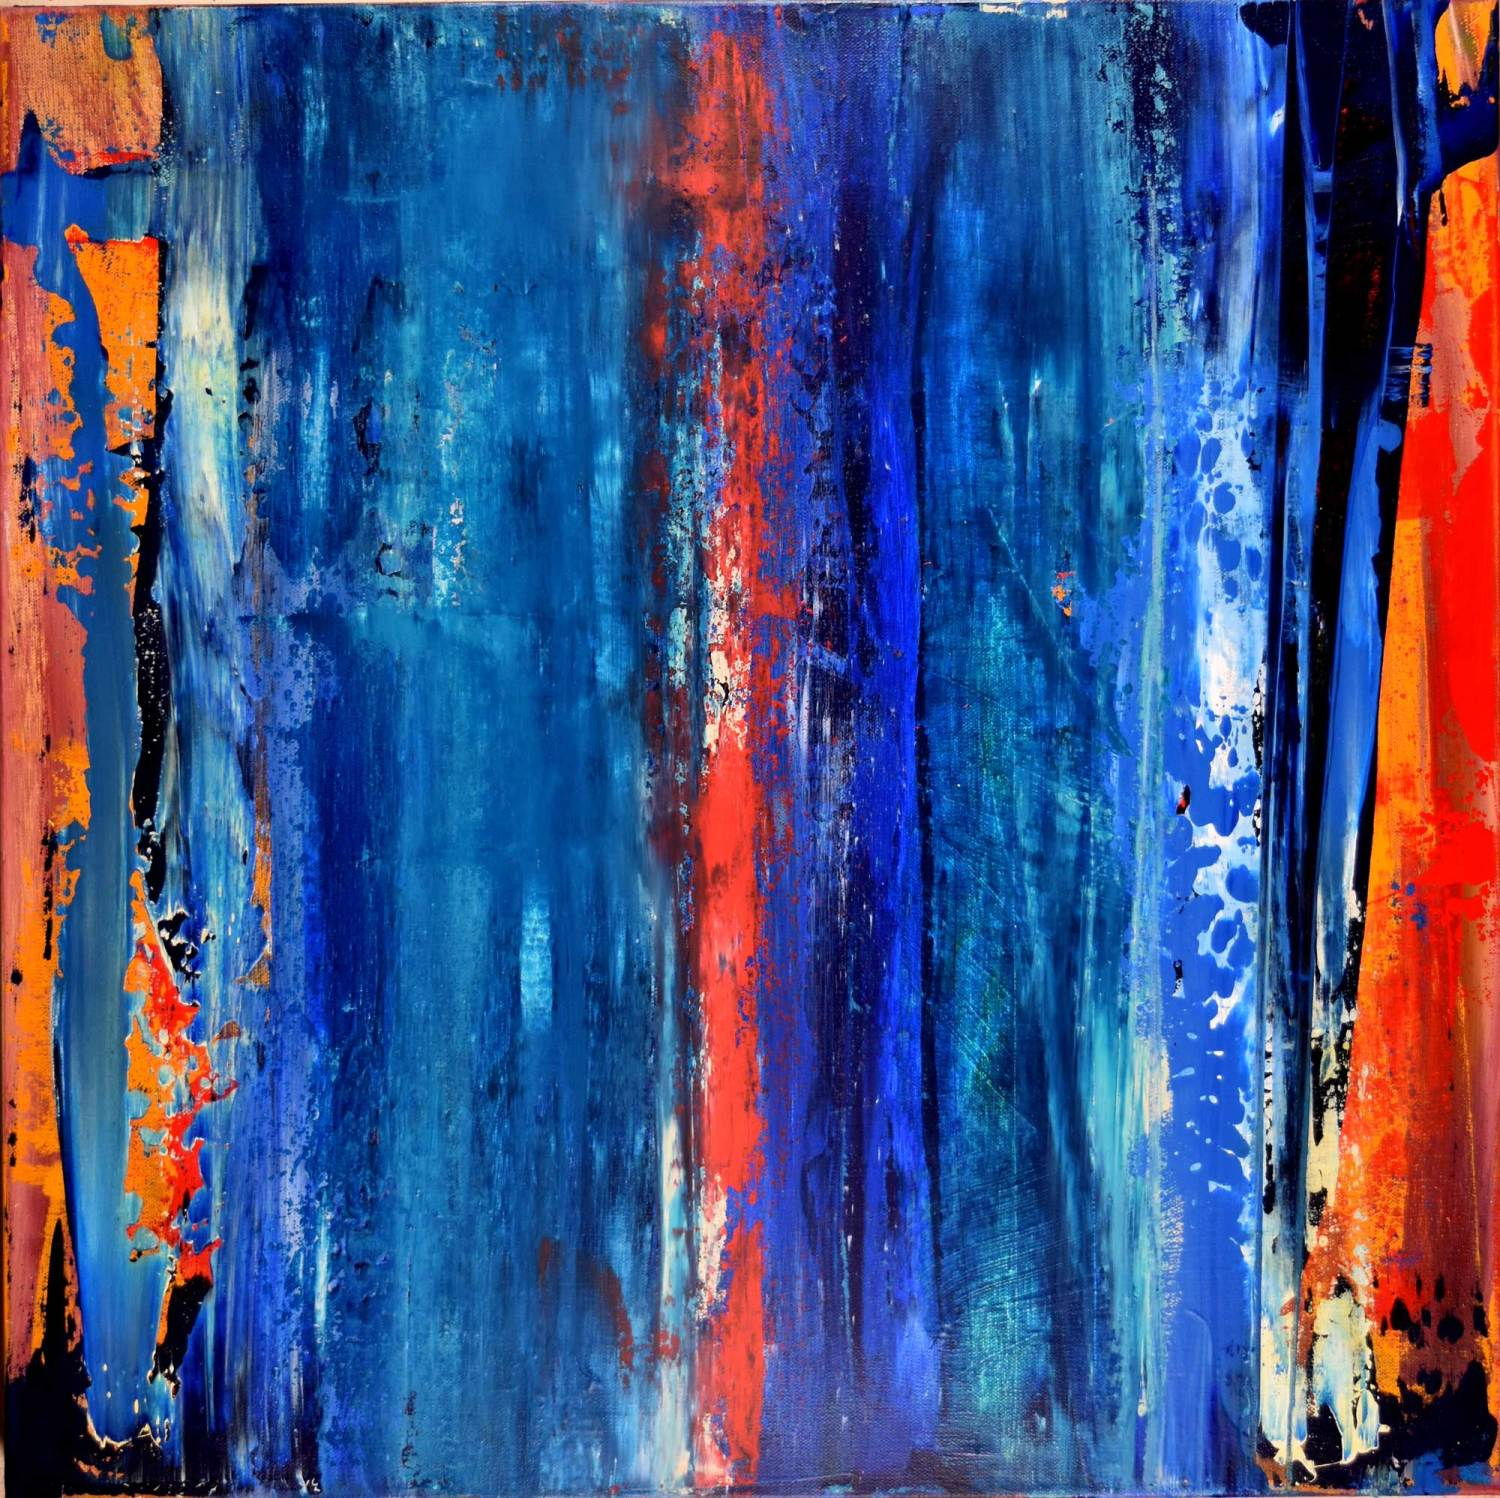 Abstract Painting - Night of Thunder I (2016) Abstract art - Acrylic painting by Nestor Toro in Los Angeles